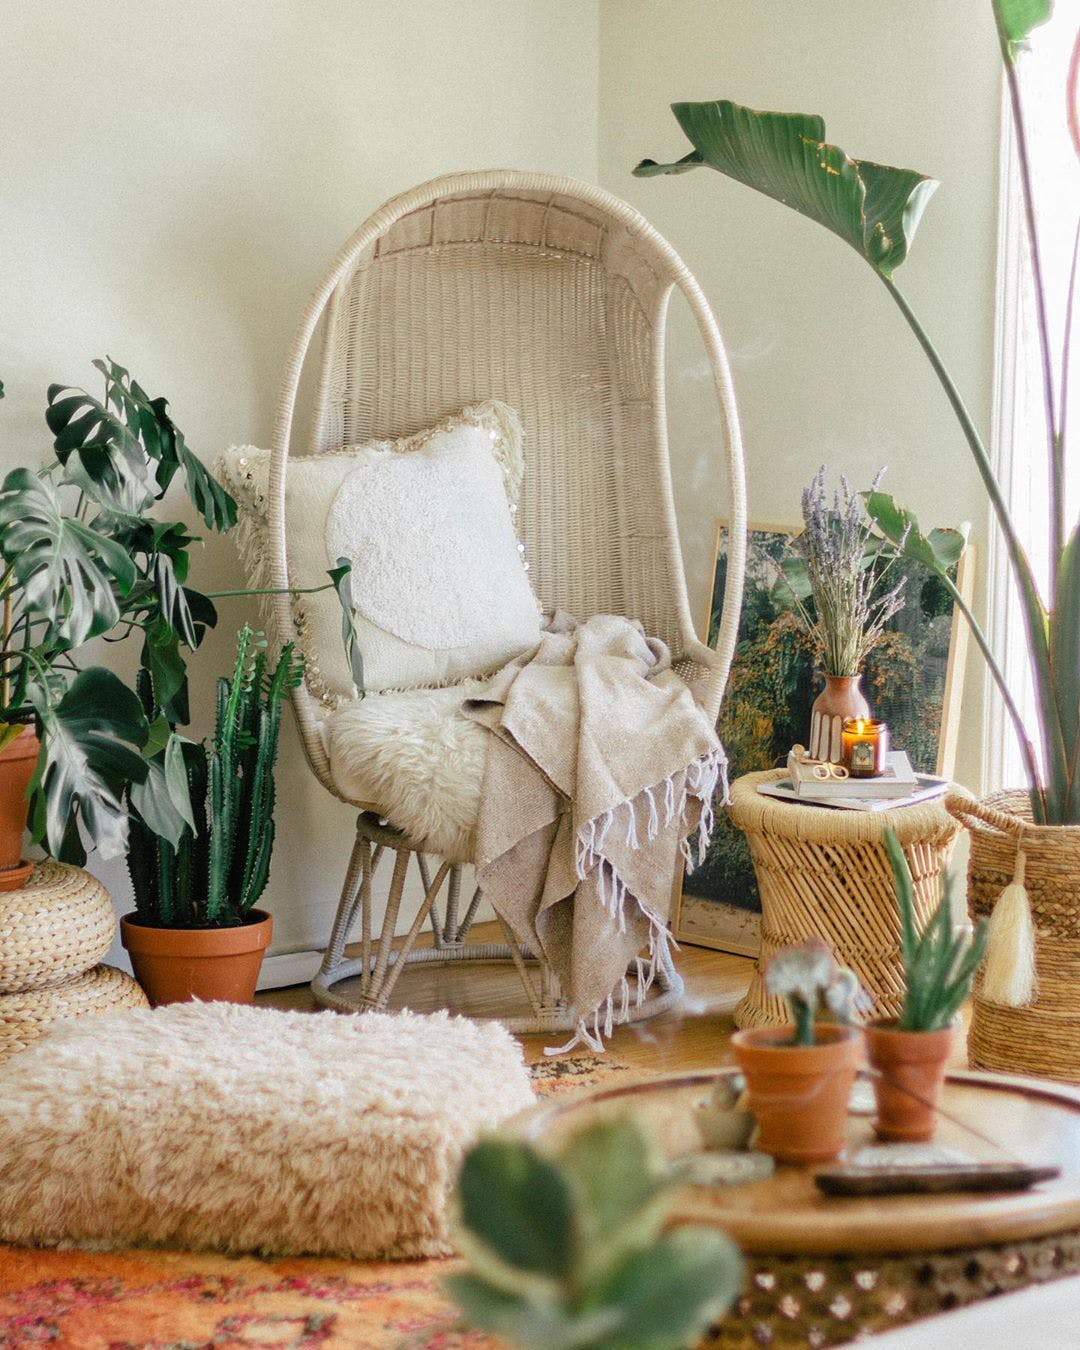 Last, I wanted to include this photo for its great wicker egg chair. I've actually been looking for one of these for my patio forever.